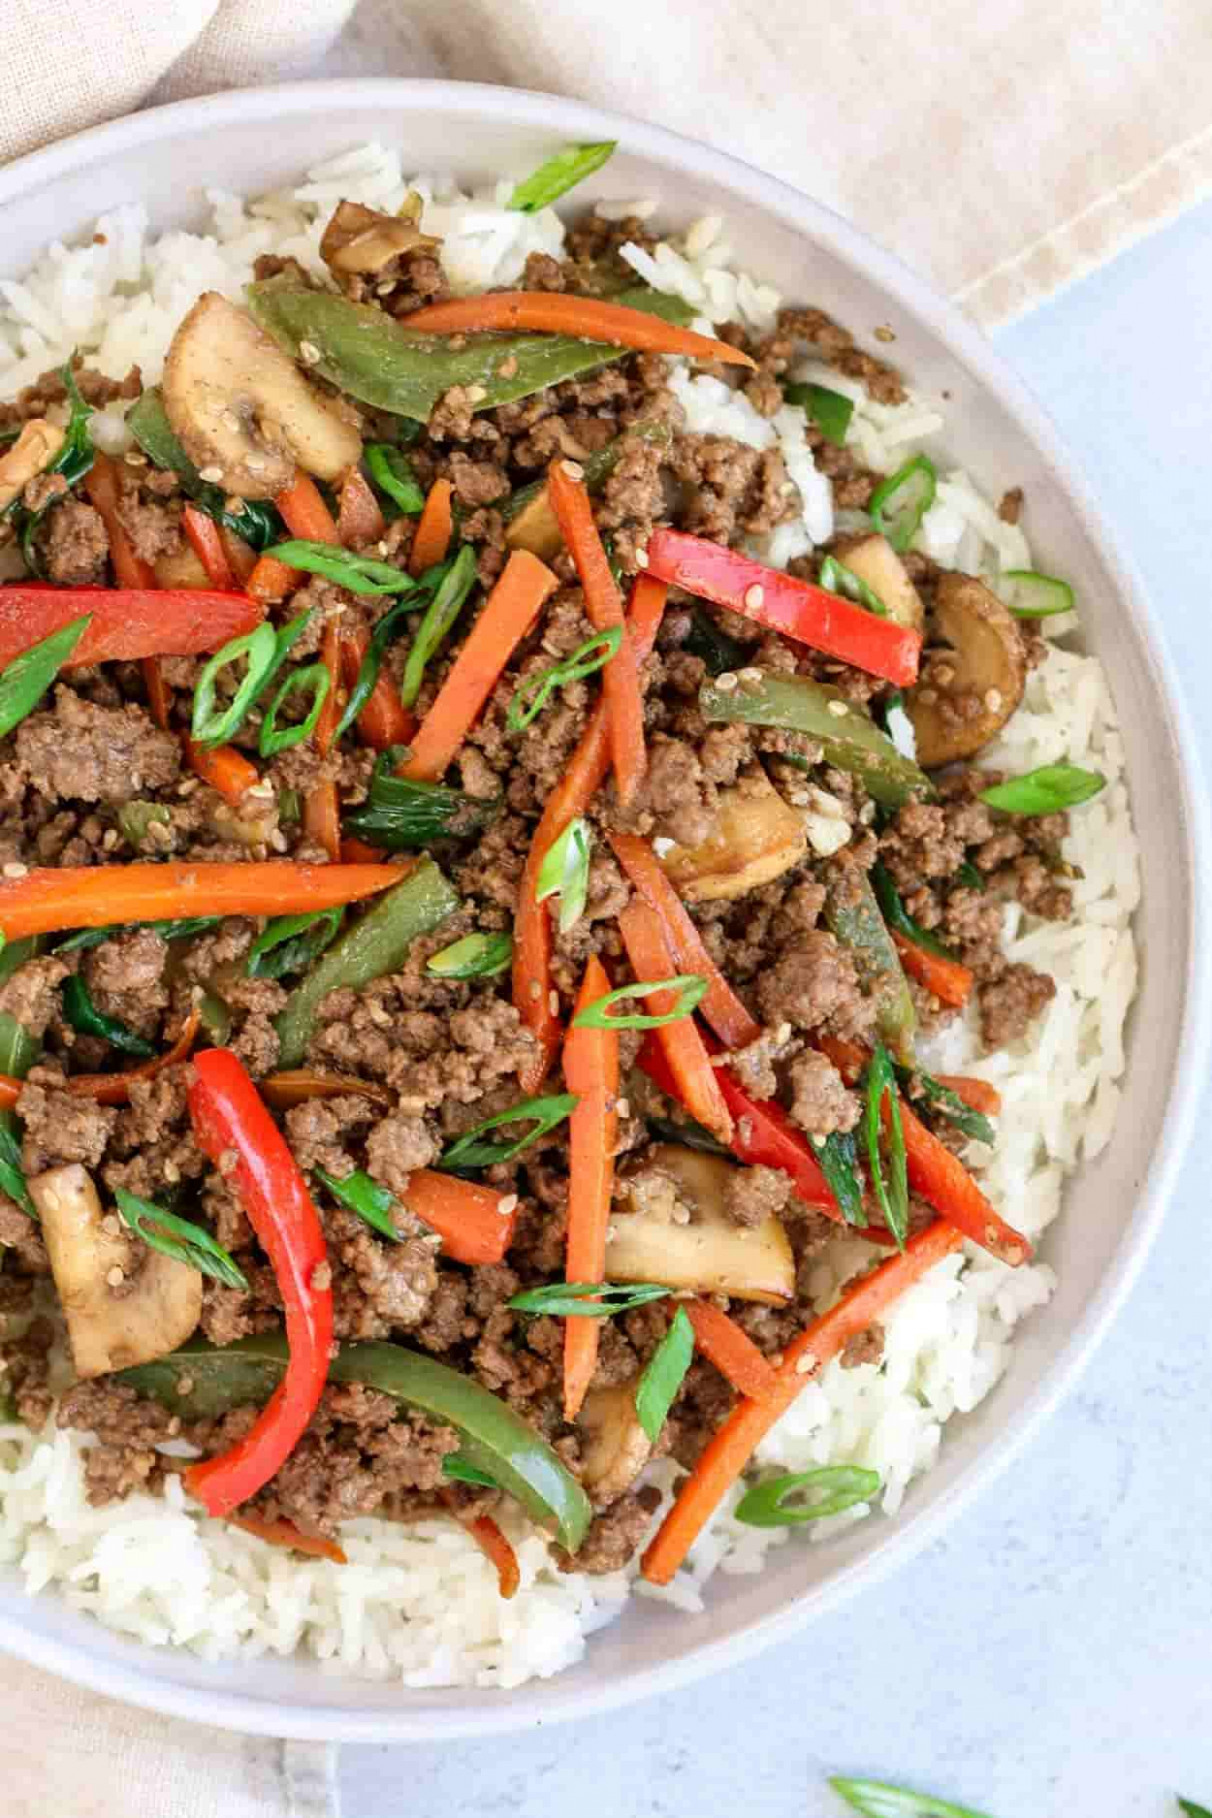 Ground Beef Stir Fry Recipe - recipes with ground beef for dinner